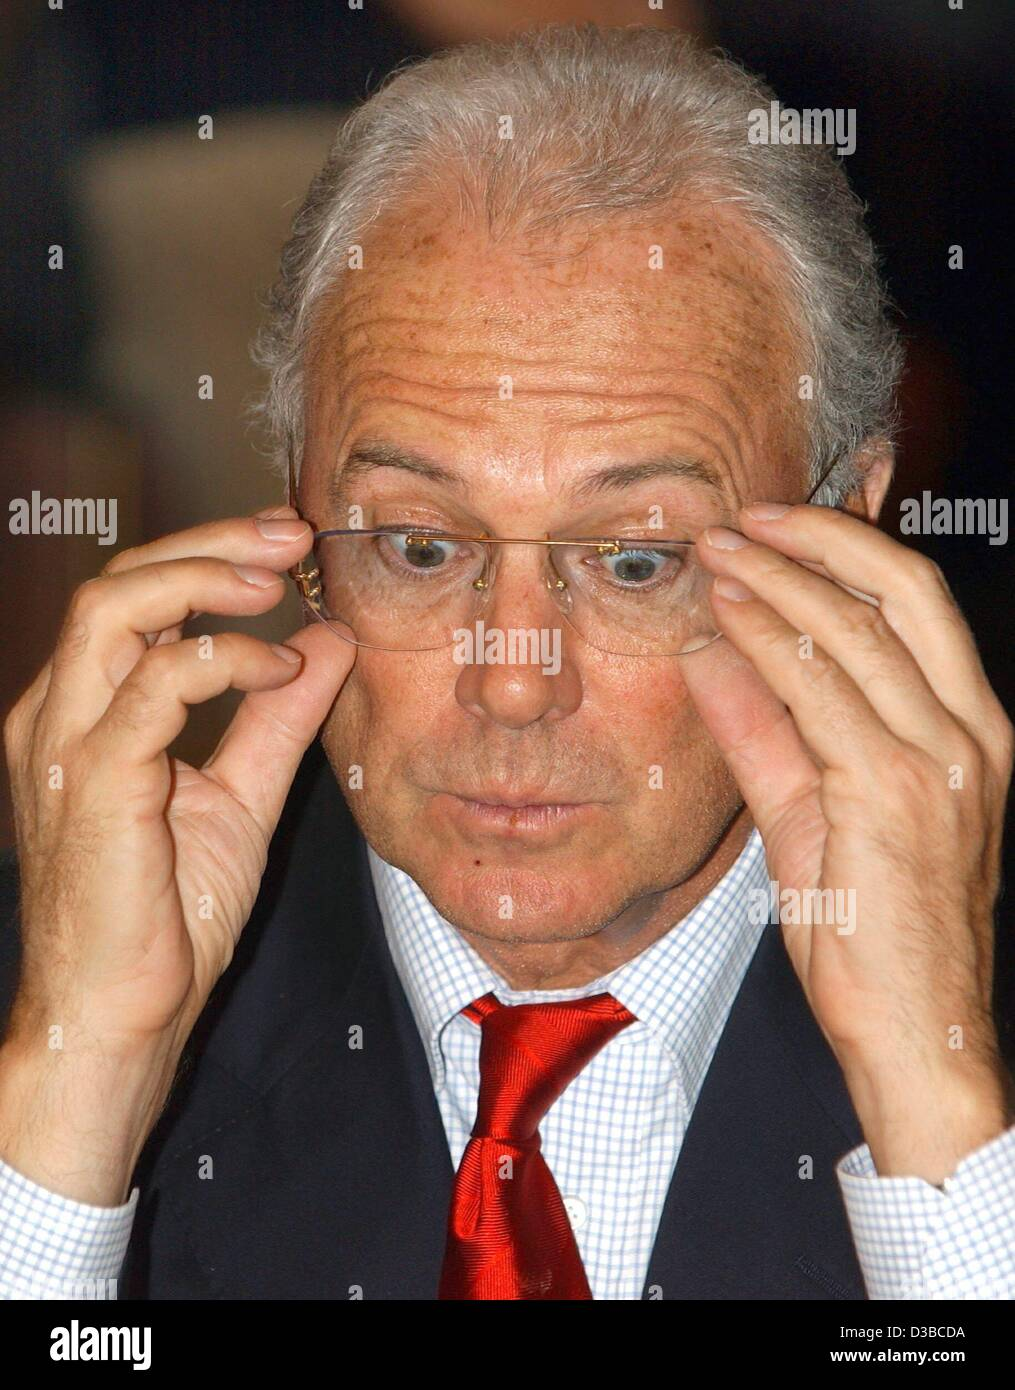 dpa Franz Beckenbauer President of the German soccer club FC